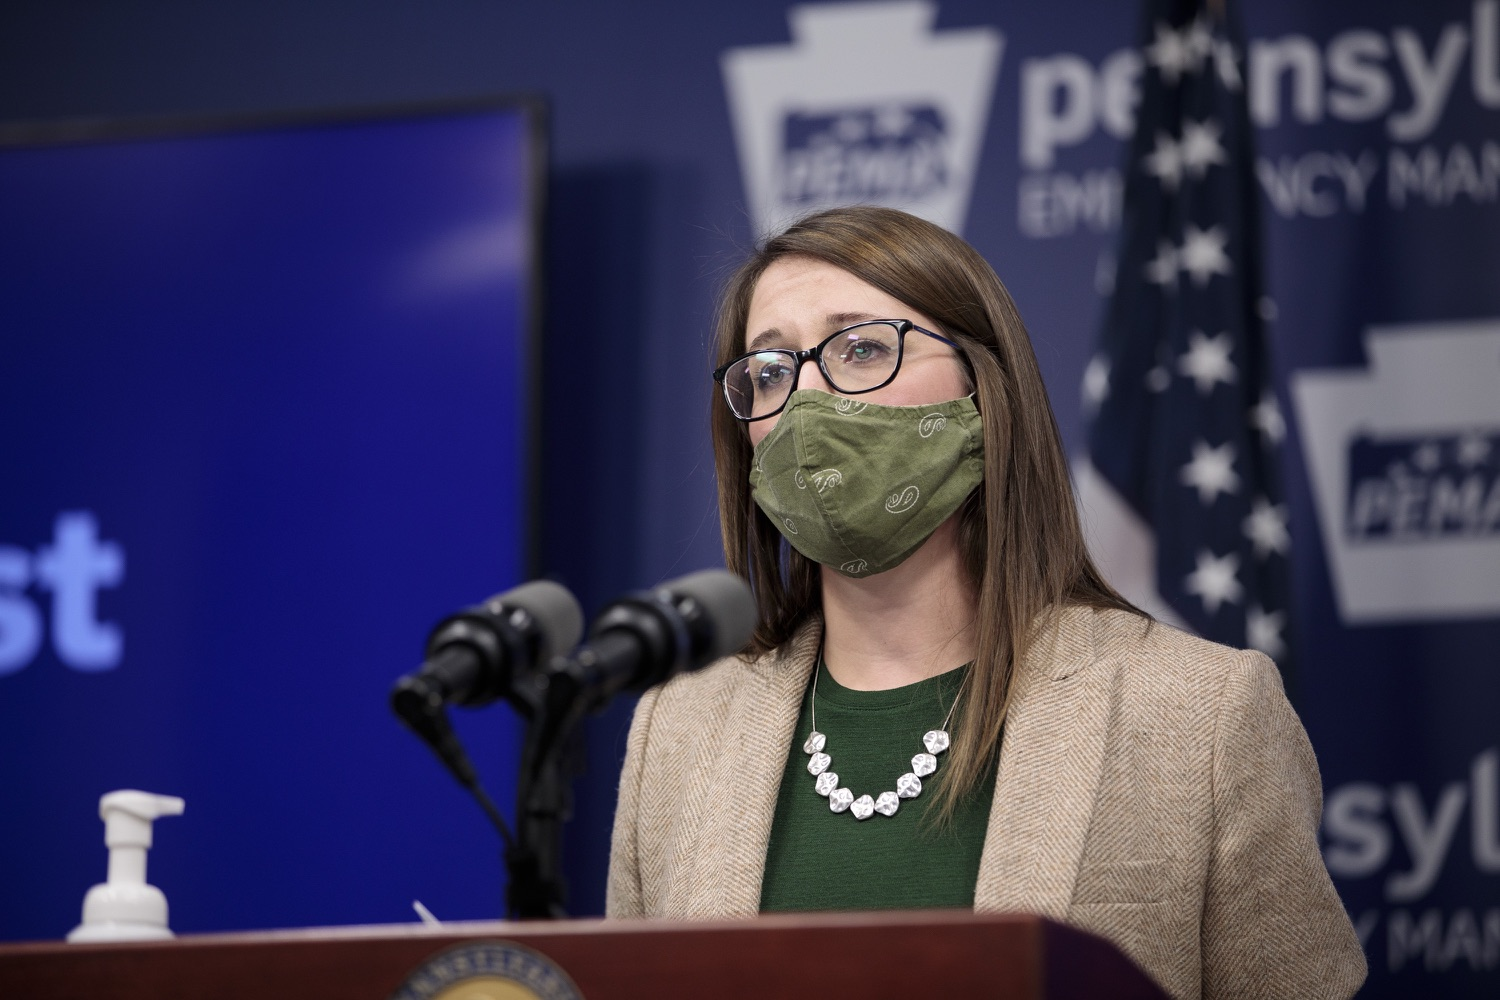 """<a href=""""https://filesource.wostreaming.net/commonwealthofpa/photo/18524_doh_vaccine_dz_11.JPG"""" target=""""_blank"""">⇣Download Photo<br></a>Department of Health Senior Advisor Lindsey Mauldin speaking at the press conference.  The Pennsylvania Department of Health today launched a new tool called Your Turn to help Pennsylvanians understand where they fall in the vaccine prioritization effort and to be alerted when it is their turn to schedule an appointment for the COVID-19 vaccine.  Harrisburg, PA  February 9, 2021"""